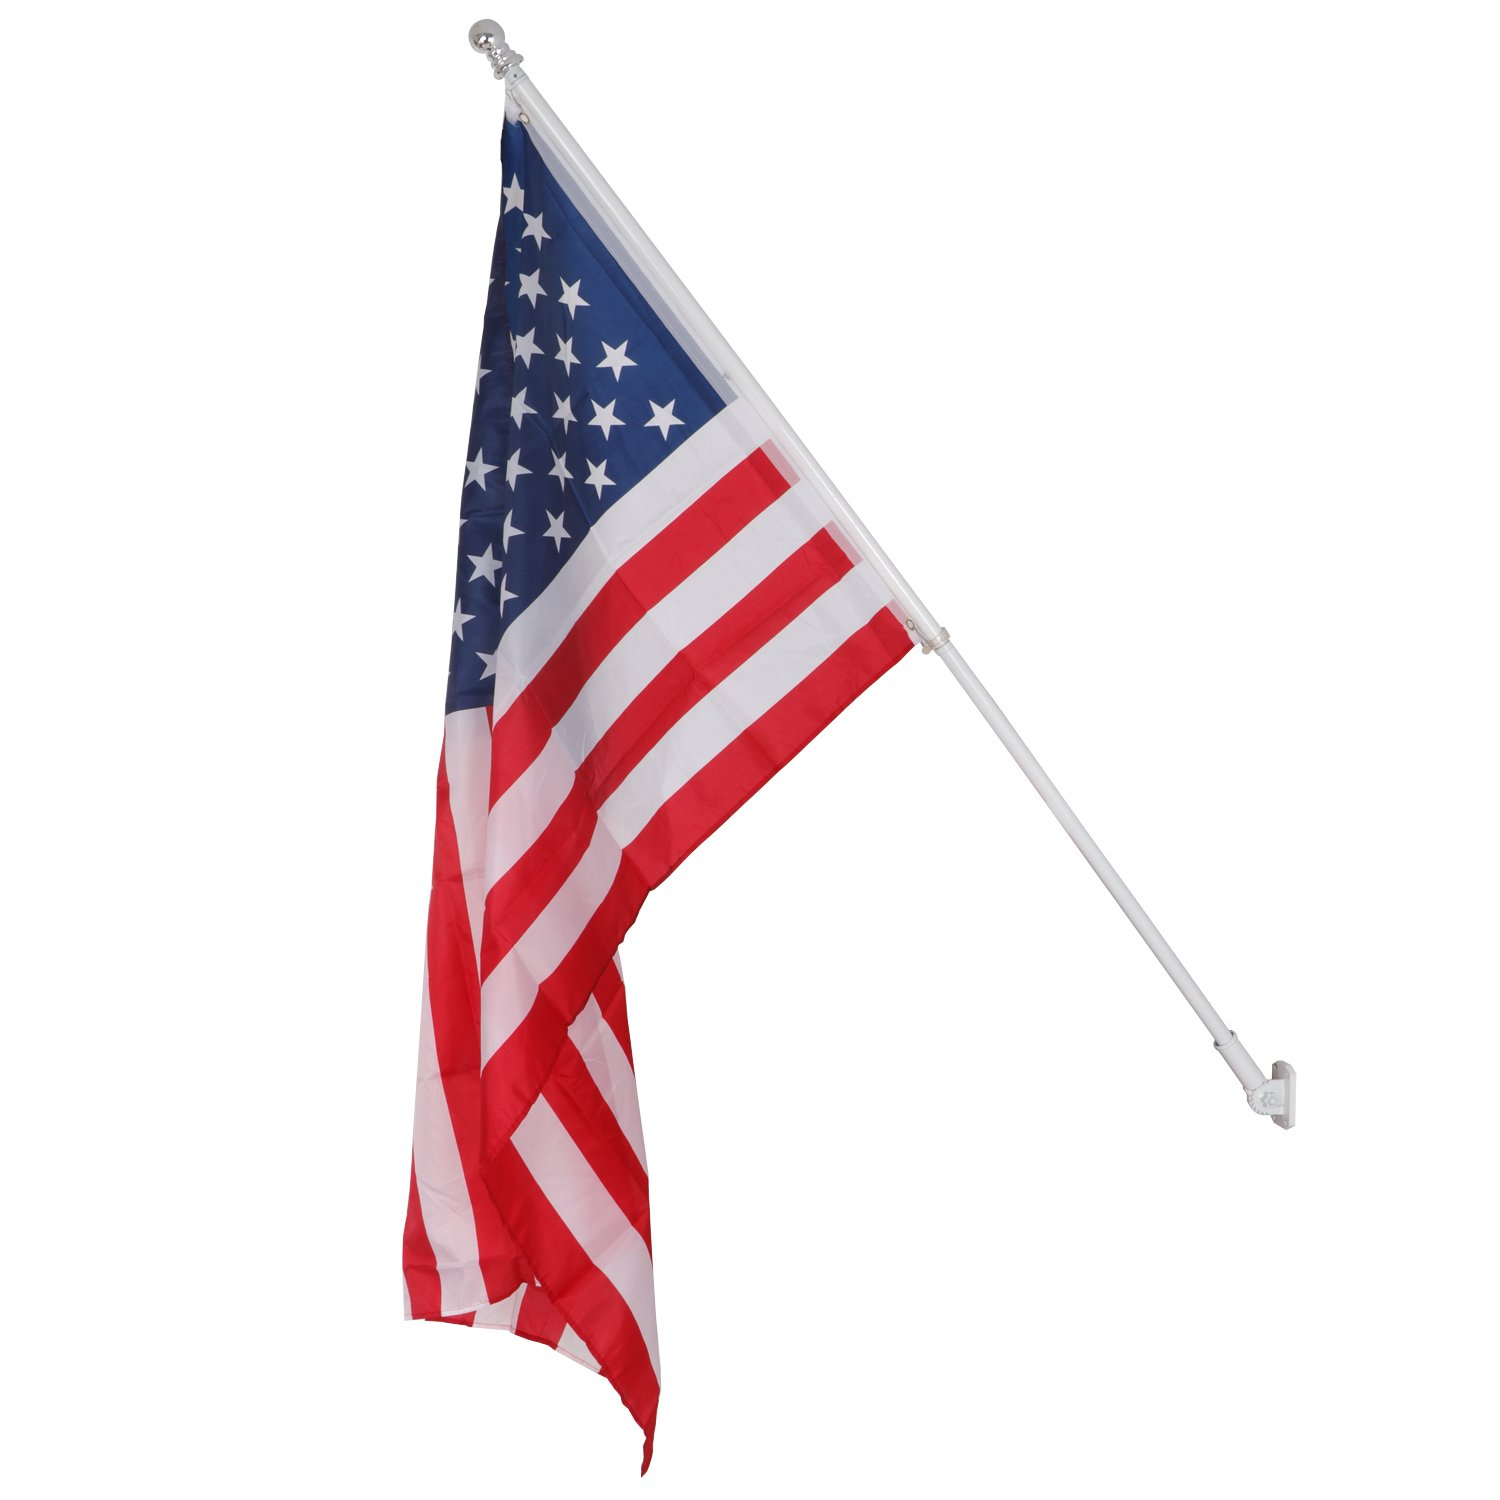 HomGarden Tangle Free Spinning Flagpole Residential or Commercial 6ft Flag Pole W/3'x5' US Flag Set, White